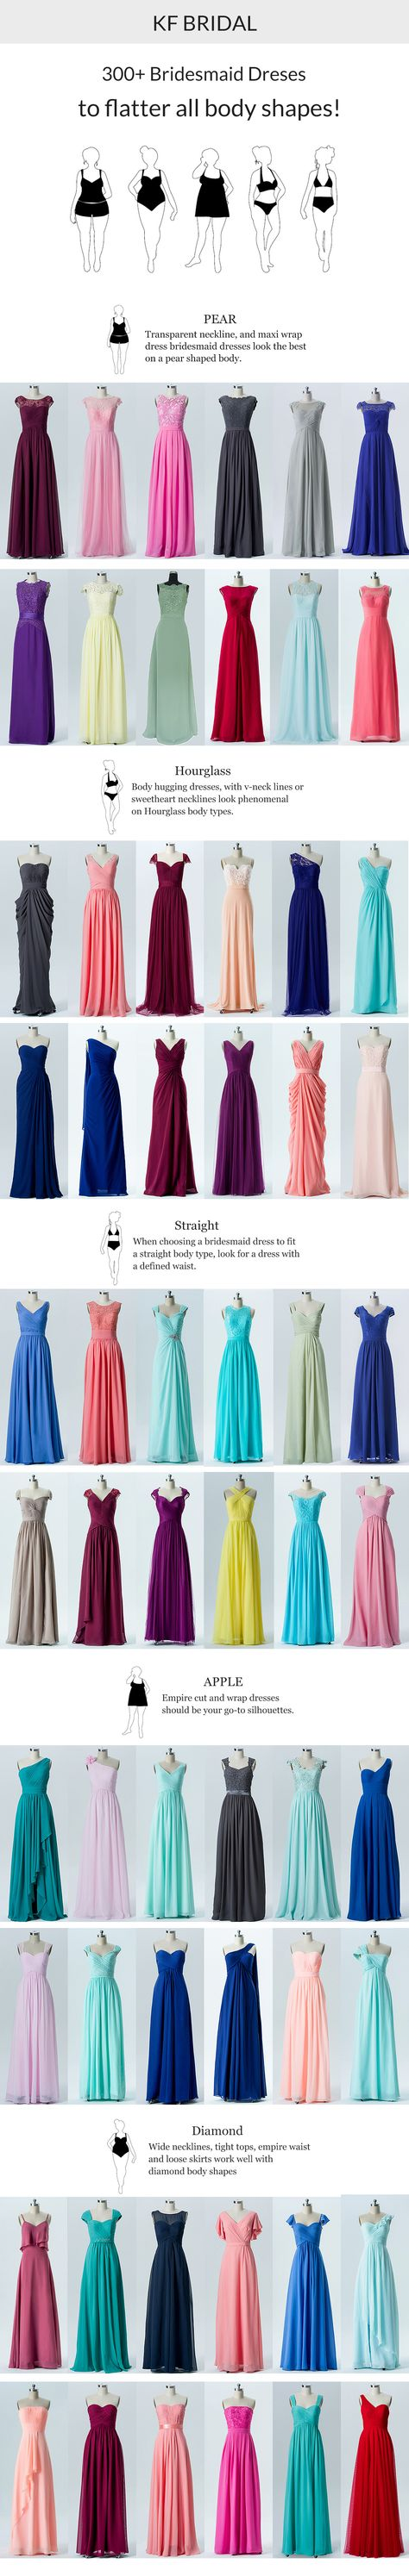 bridesmaid dresses to flatter all body shapes all come in